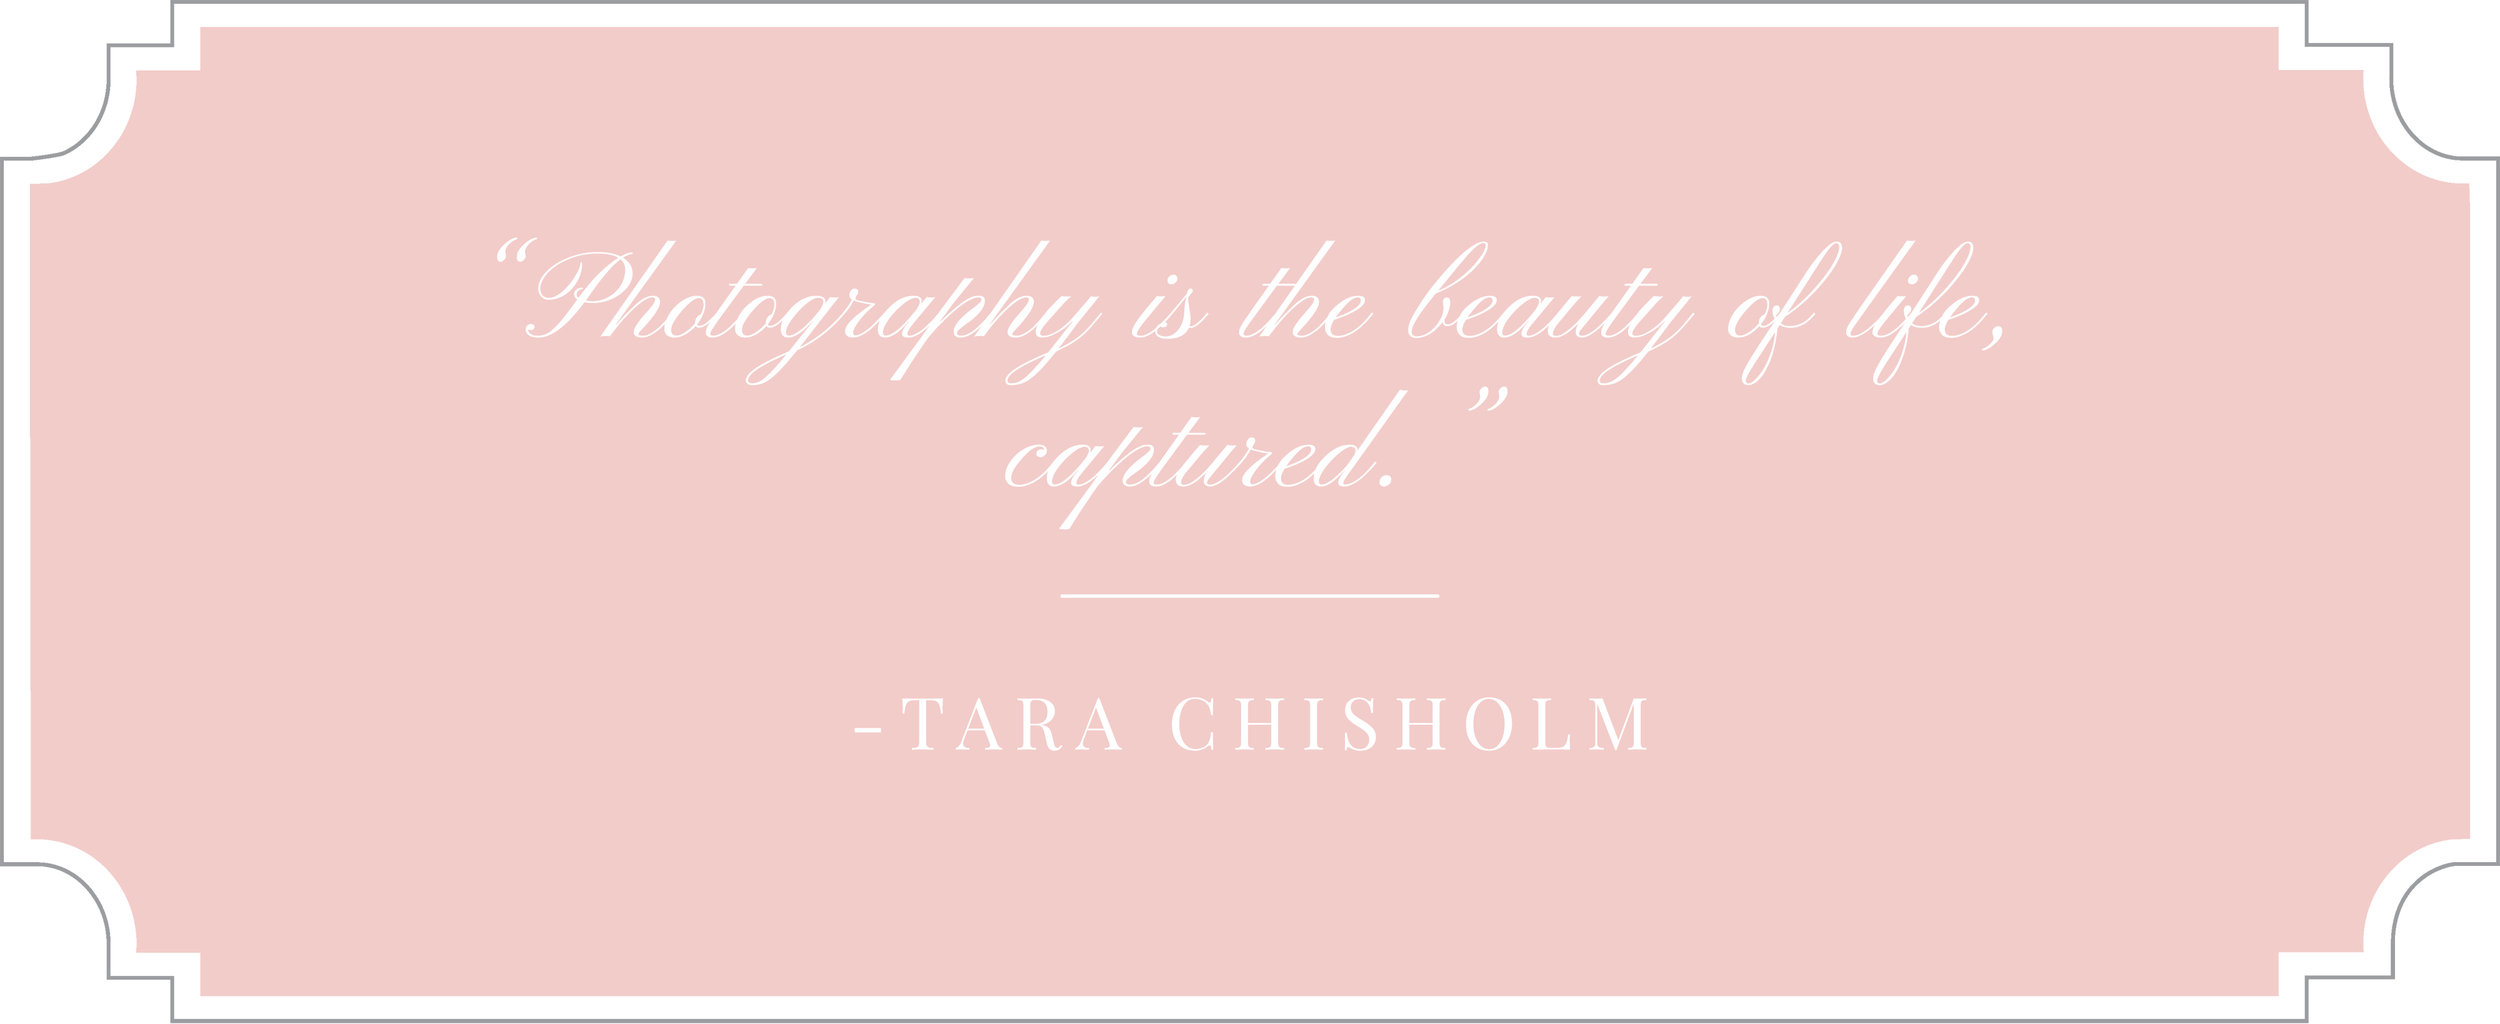 photography quote.jpg